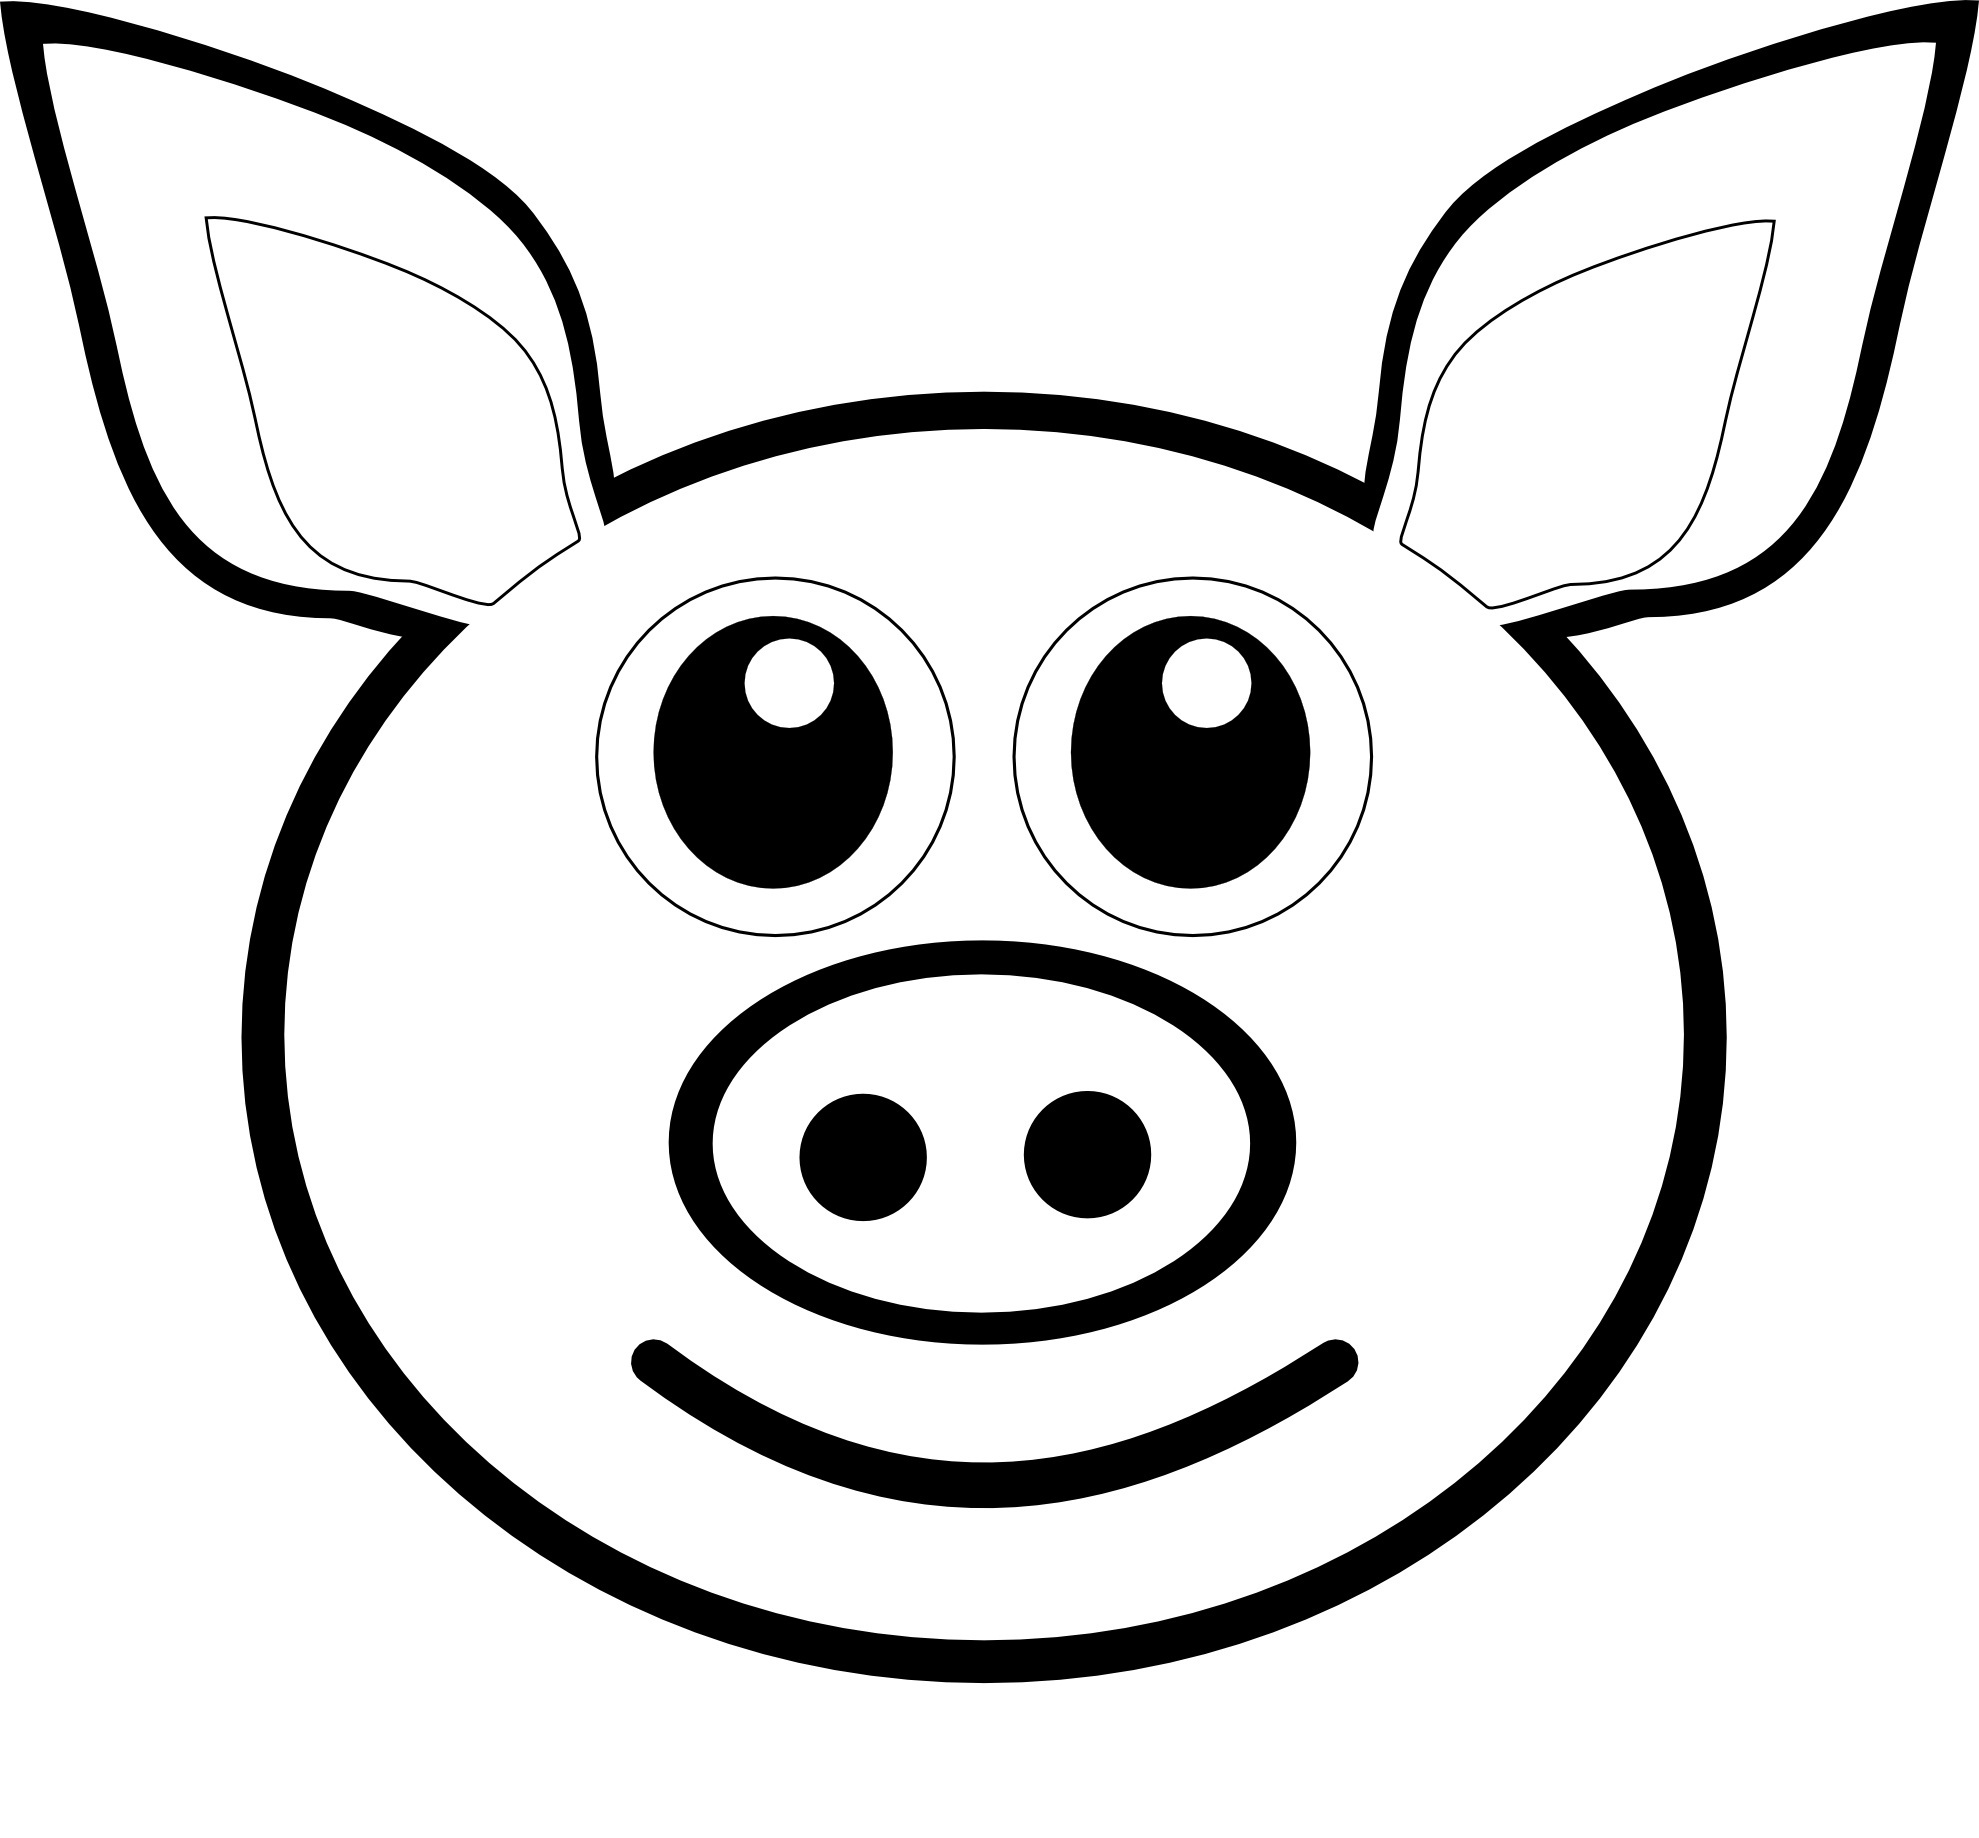 Pig Drawing Outline at GetDrawings.com | Free for personal use Pig ...